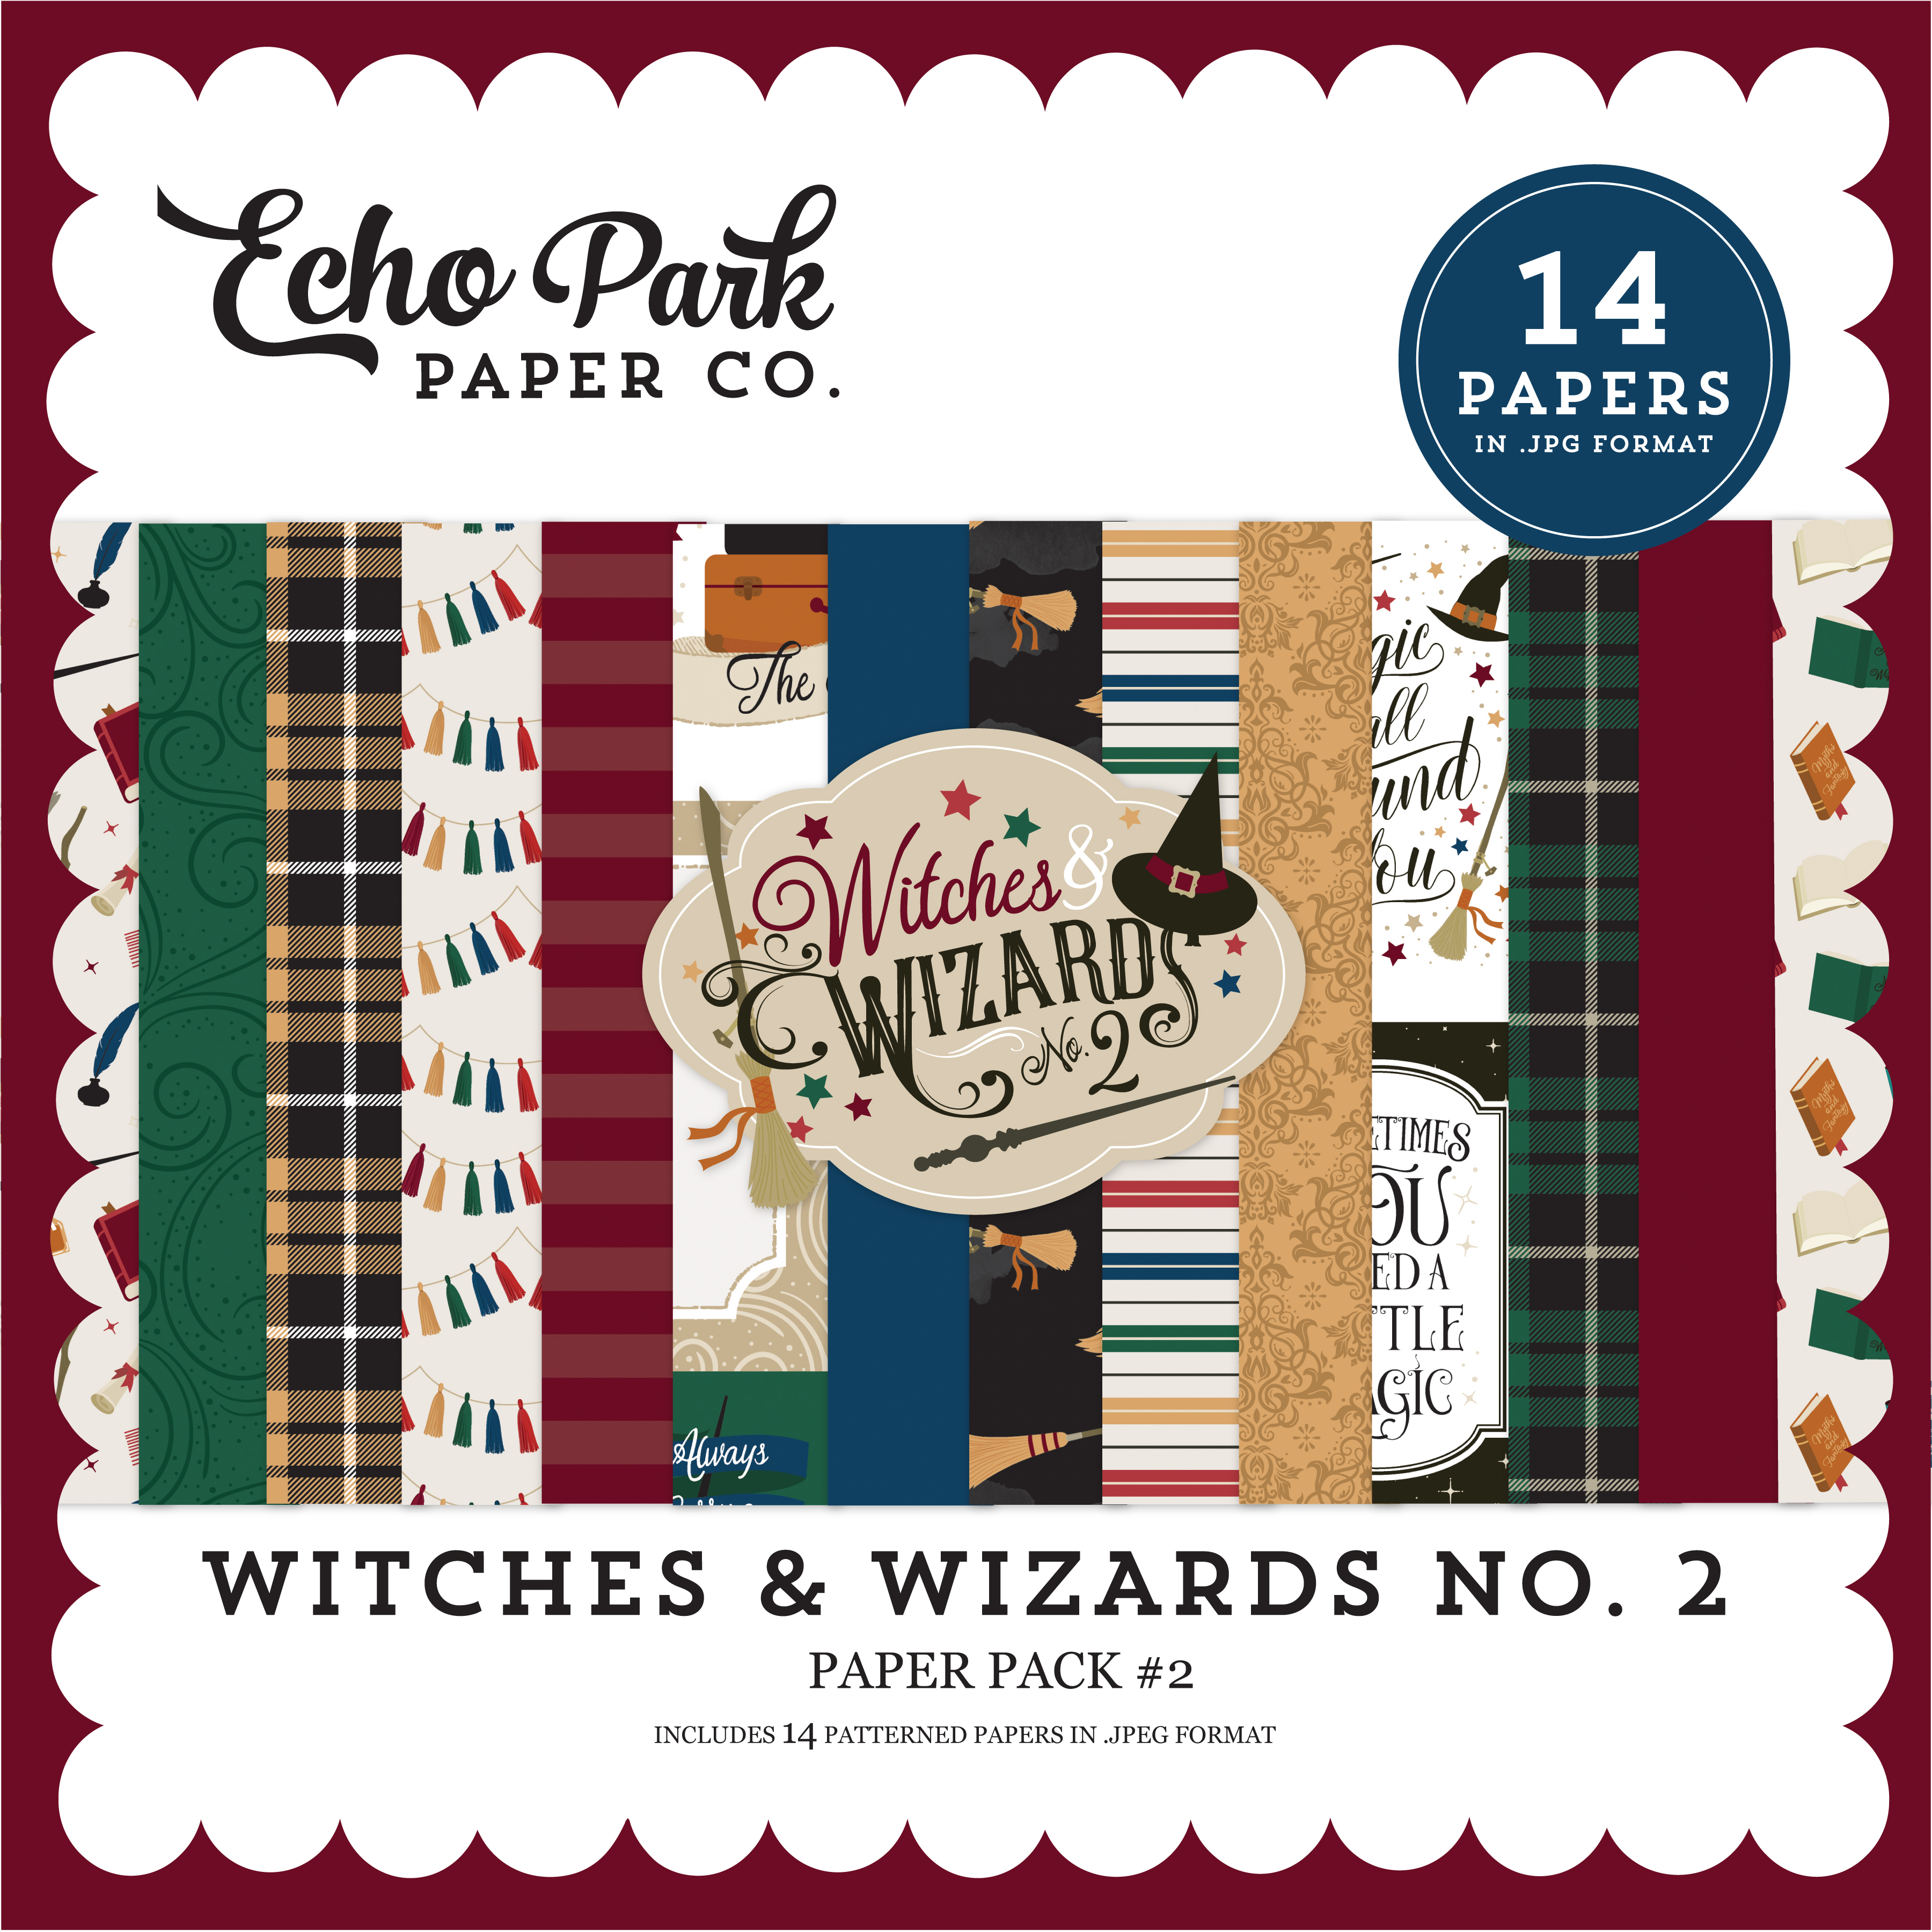 Witches & Wizards No. 2 Paper Pack #2